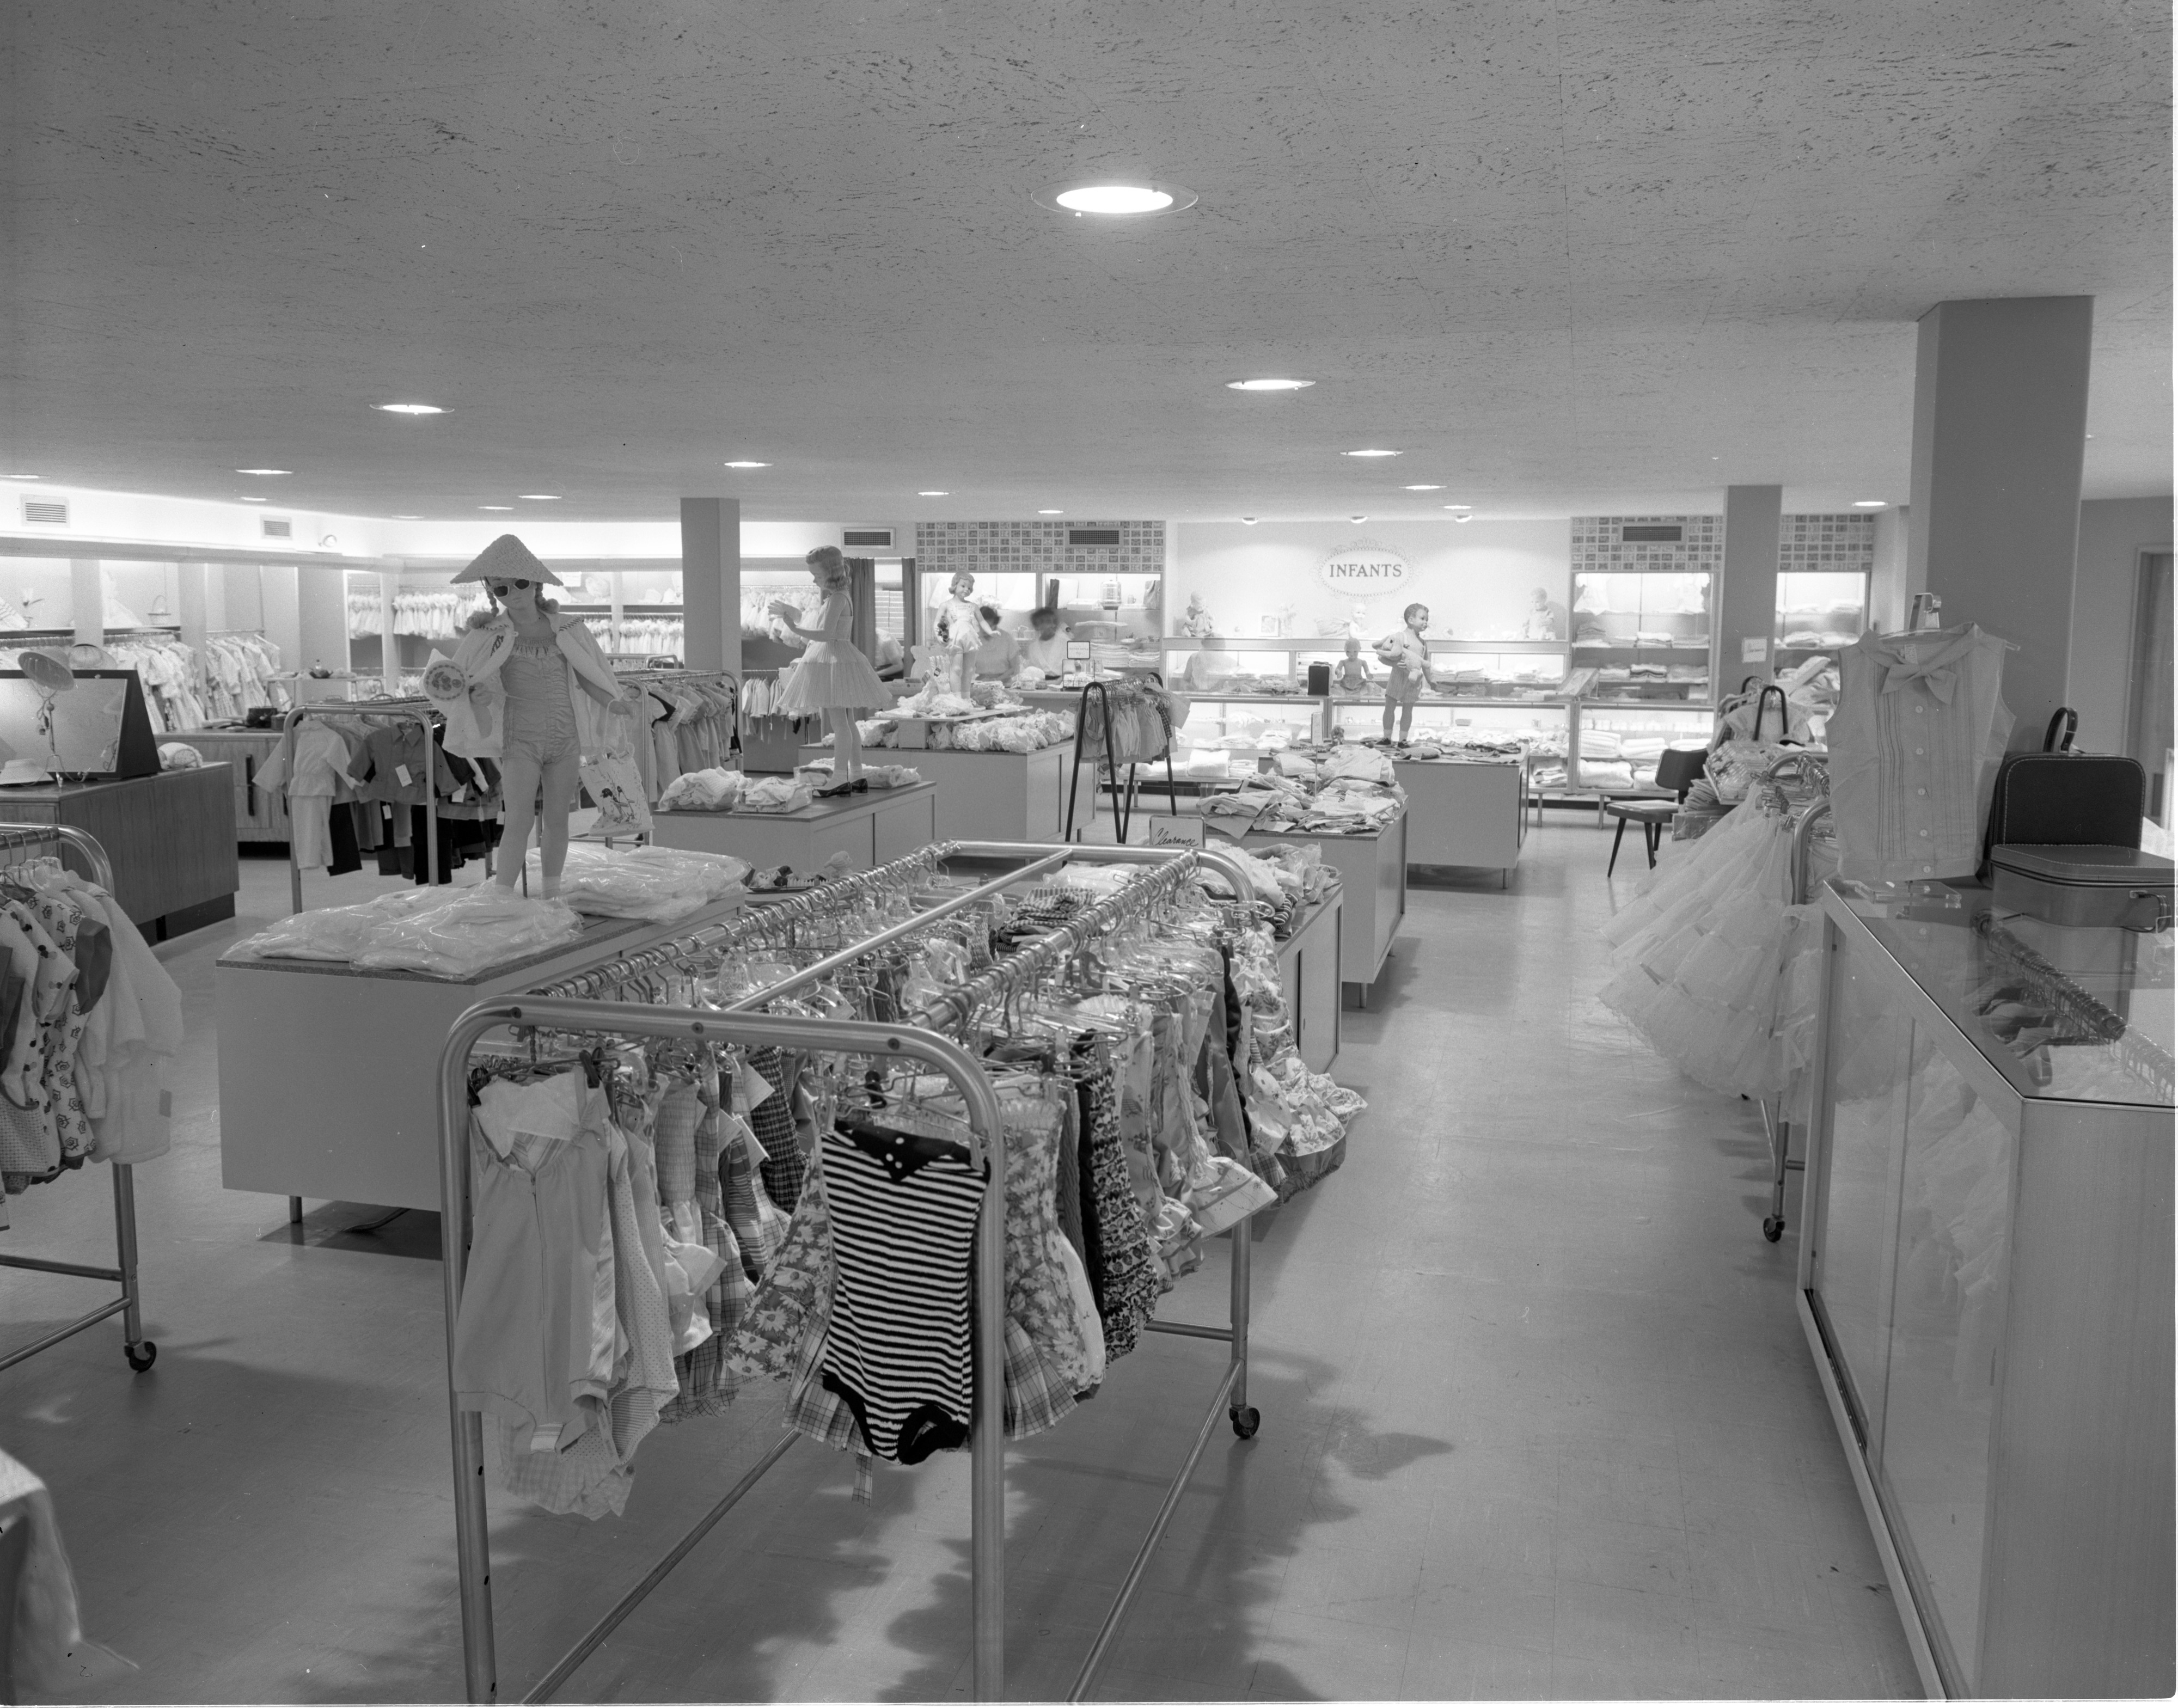 Jacobson's - Remodeled Children's Department, May 1957 image